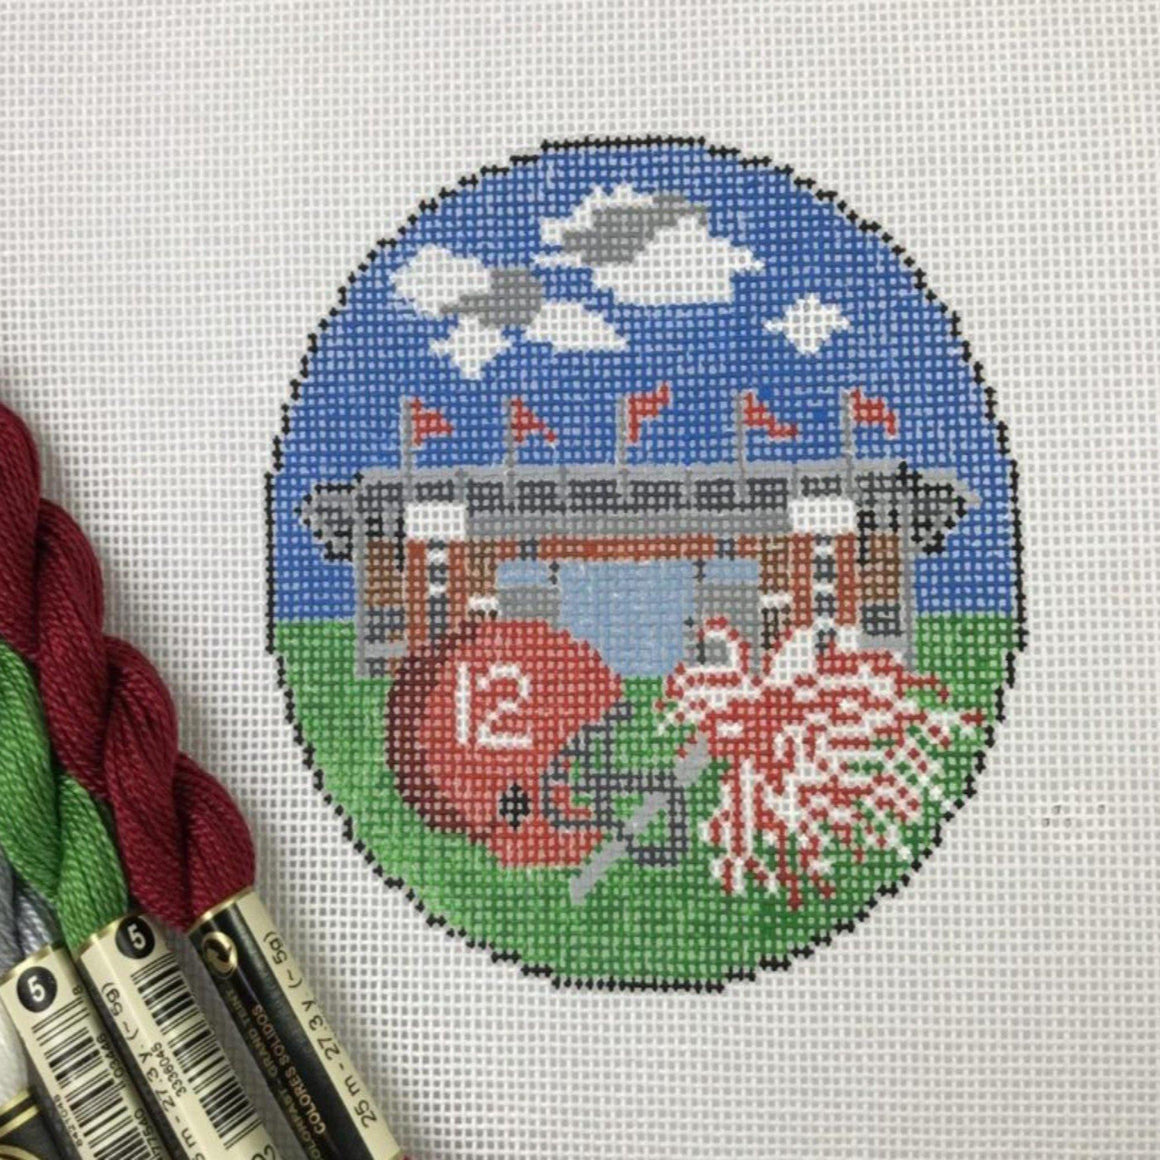 Alabama Football Needlepoint Ornament- four inch round, includes thread - Needlepoint by Laura, LLC